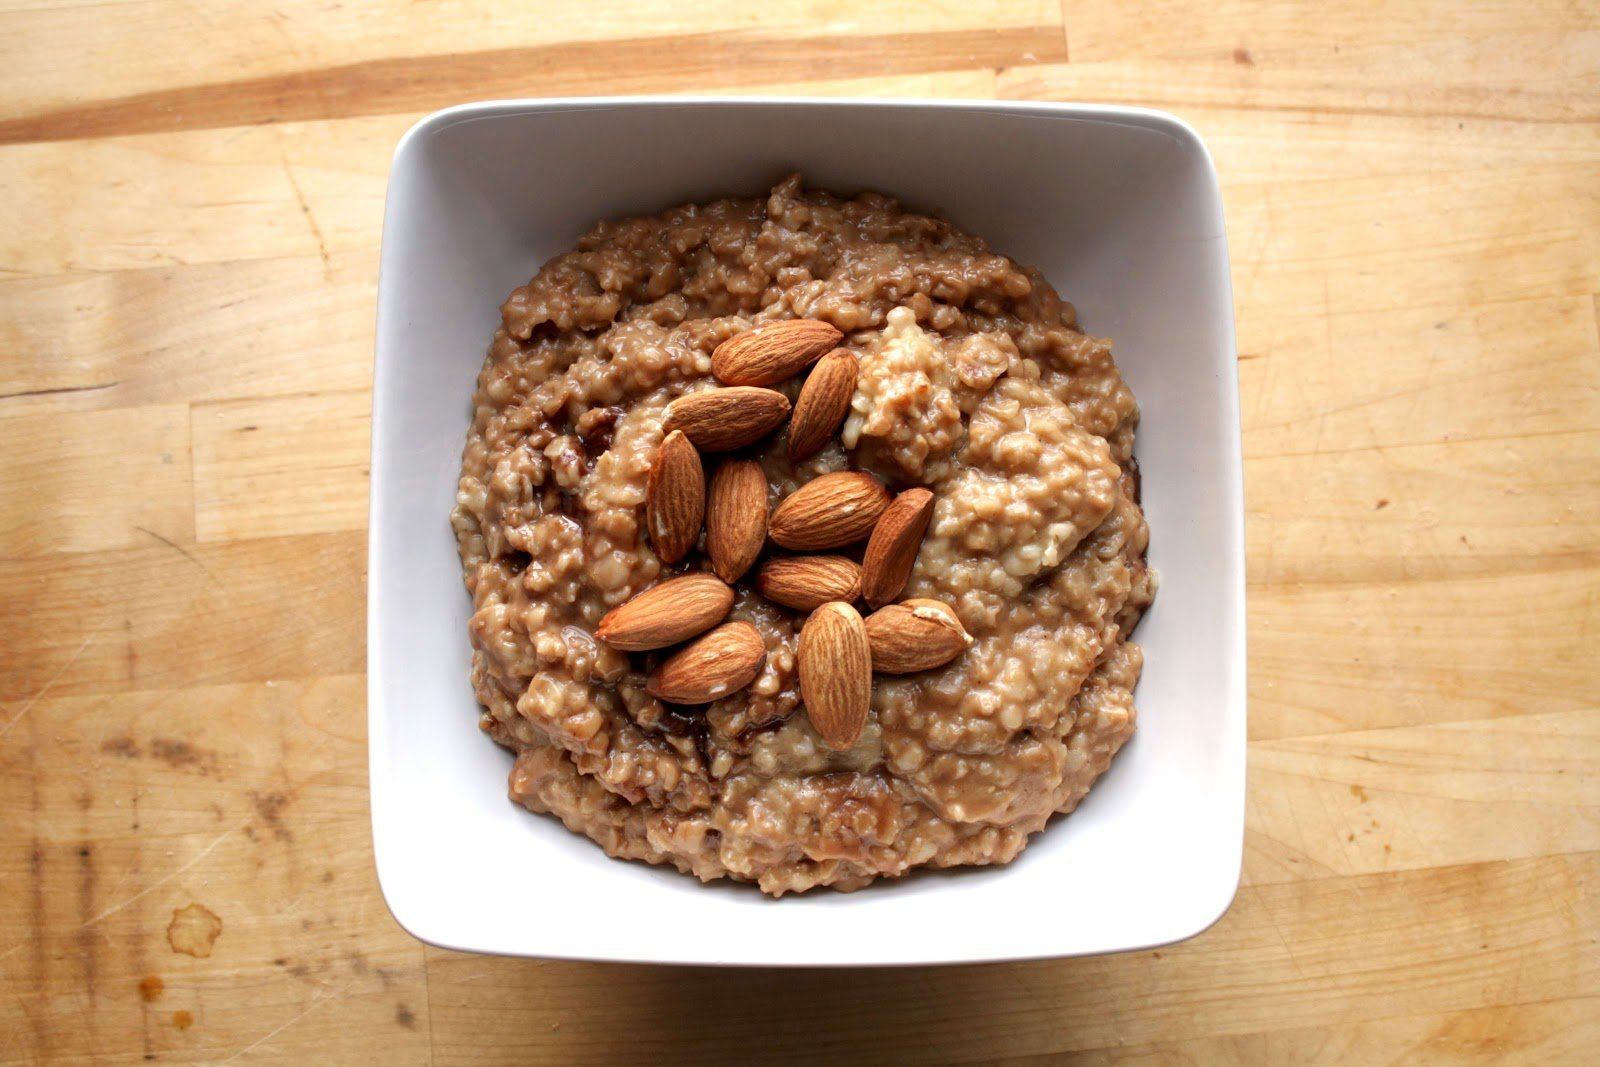 Let's Cook: Chocolate & Peanut Butter Oatmeal